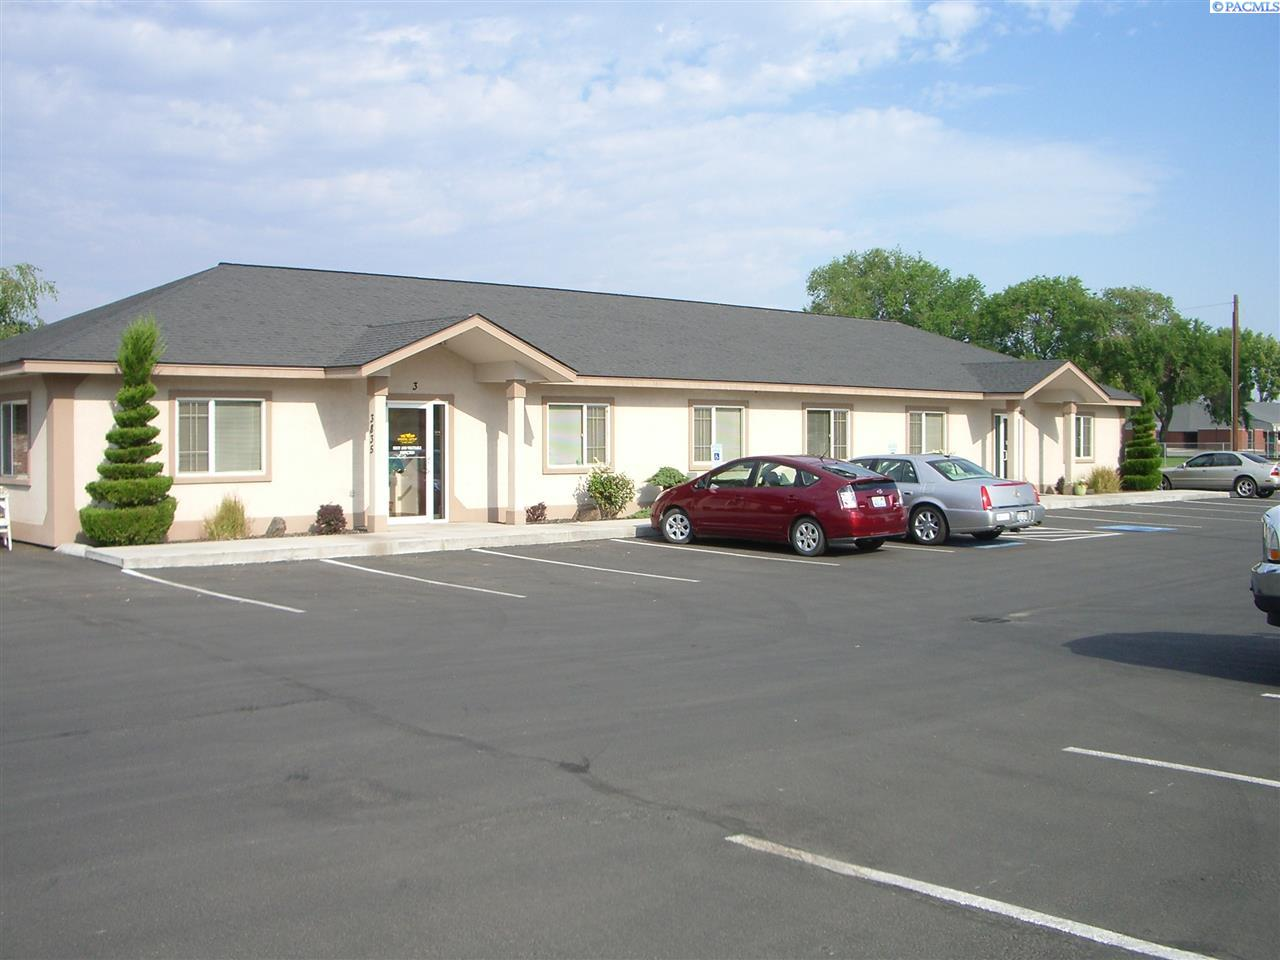 Offices for Sale at 3835 W Court St - Ste B Pasco, Washington 99301 United States